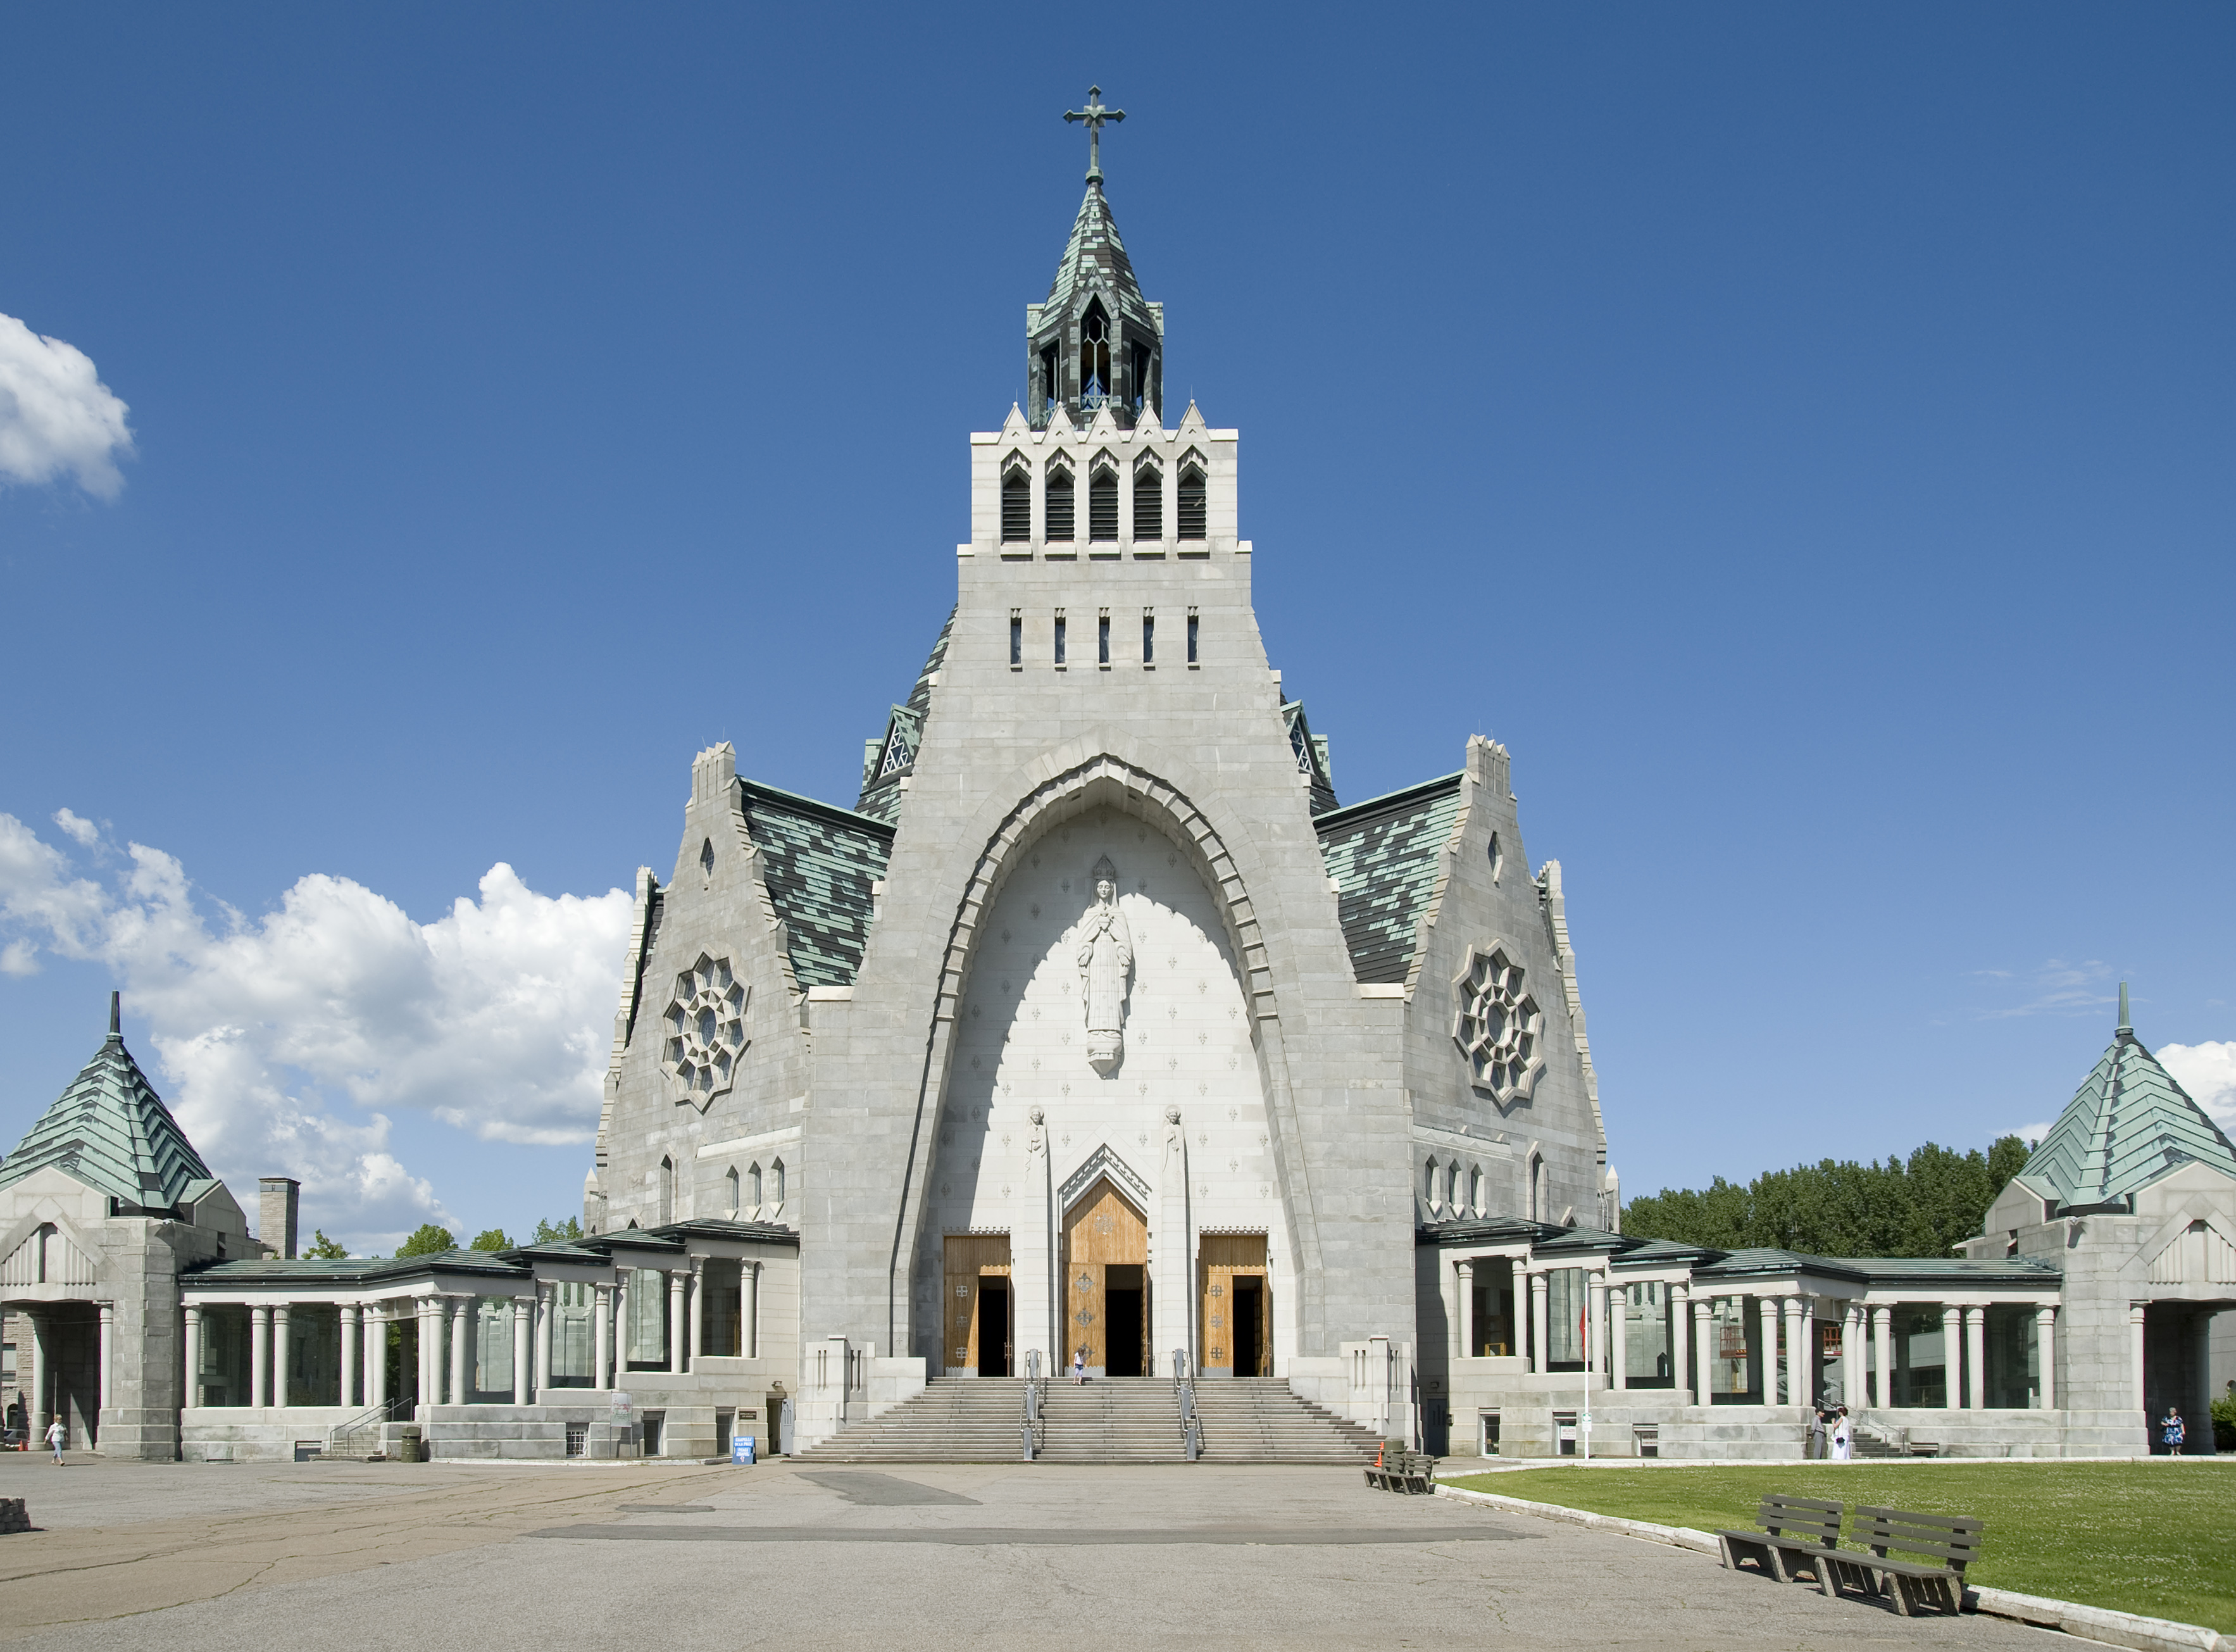 23 May – Rosary for the end to the pandemic from the Shrine of Our Lady of the Cape, Canada